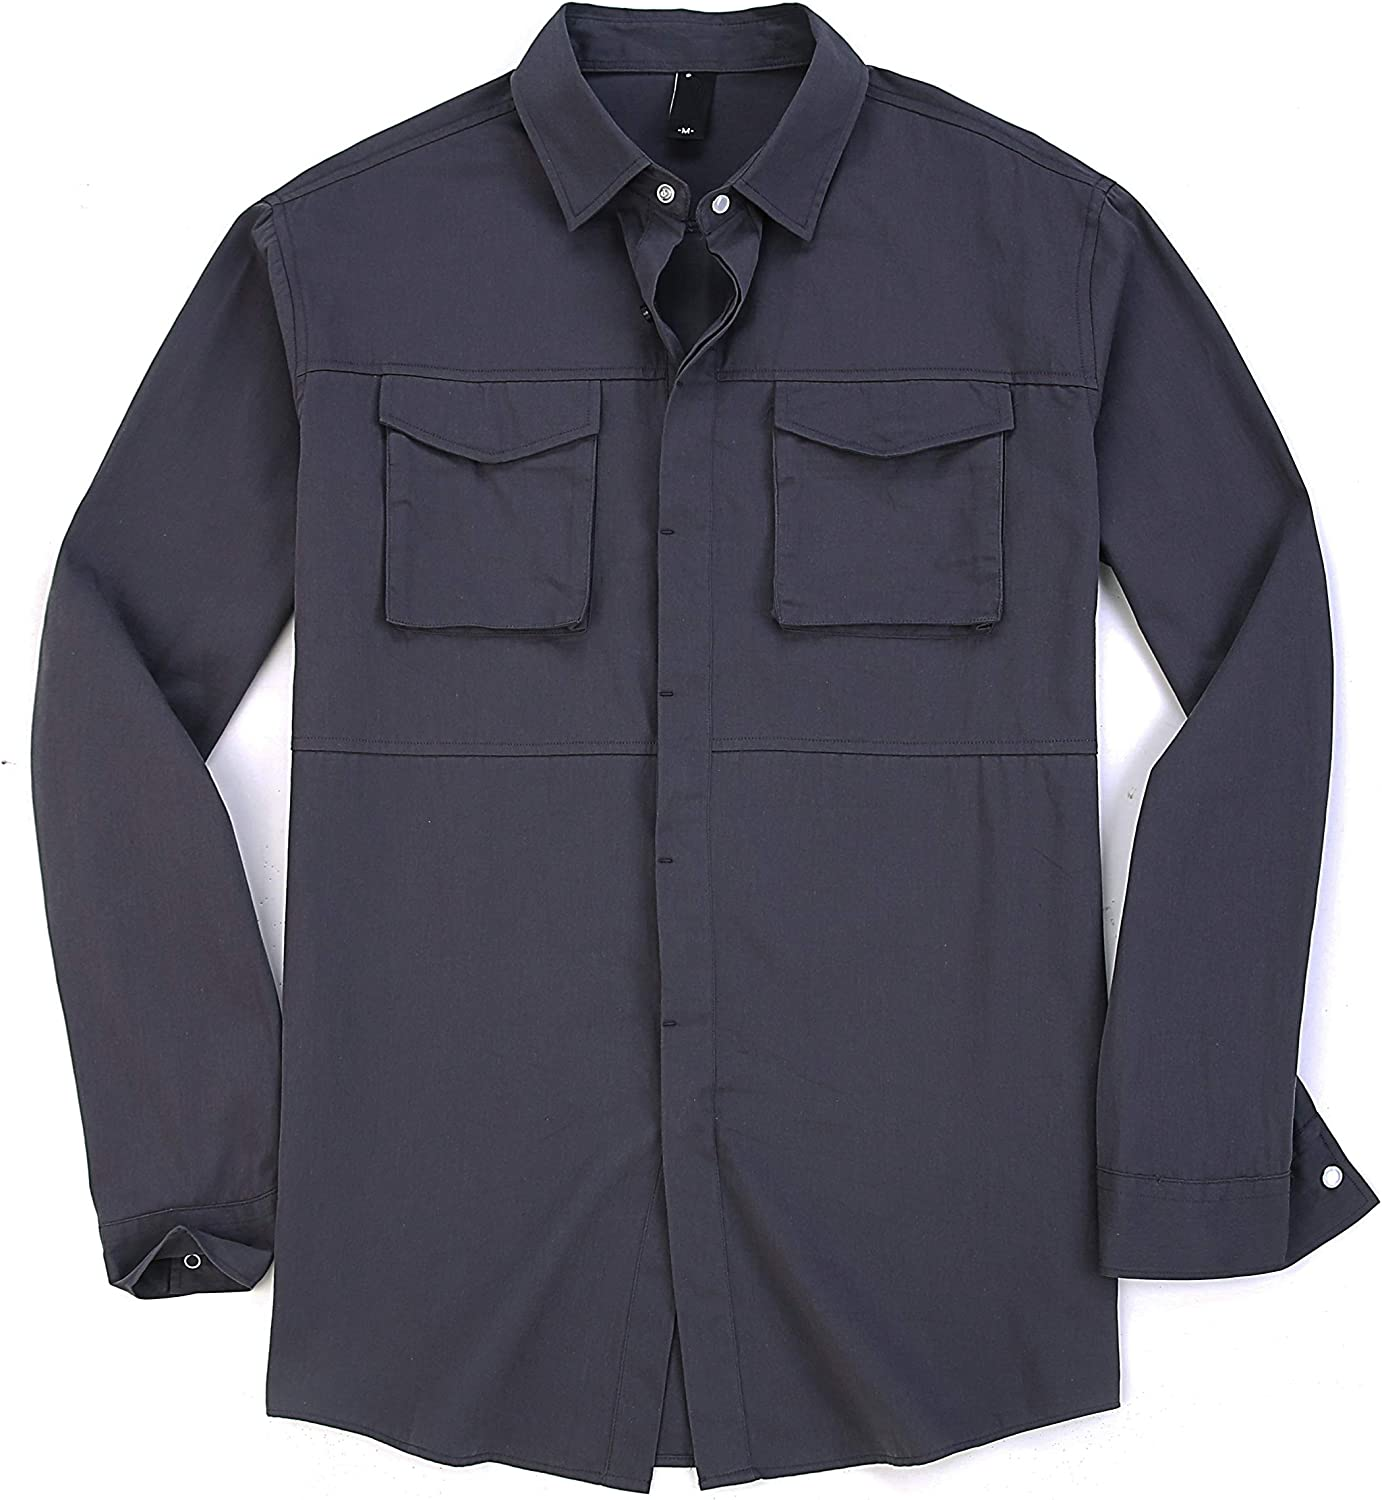 Esabel.C Men's Casual Button-Down Shirts, Long Sleeve Outdoor Shirts for Men Regular Fit, Cotton Work Shirt with Two Pockets